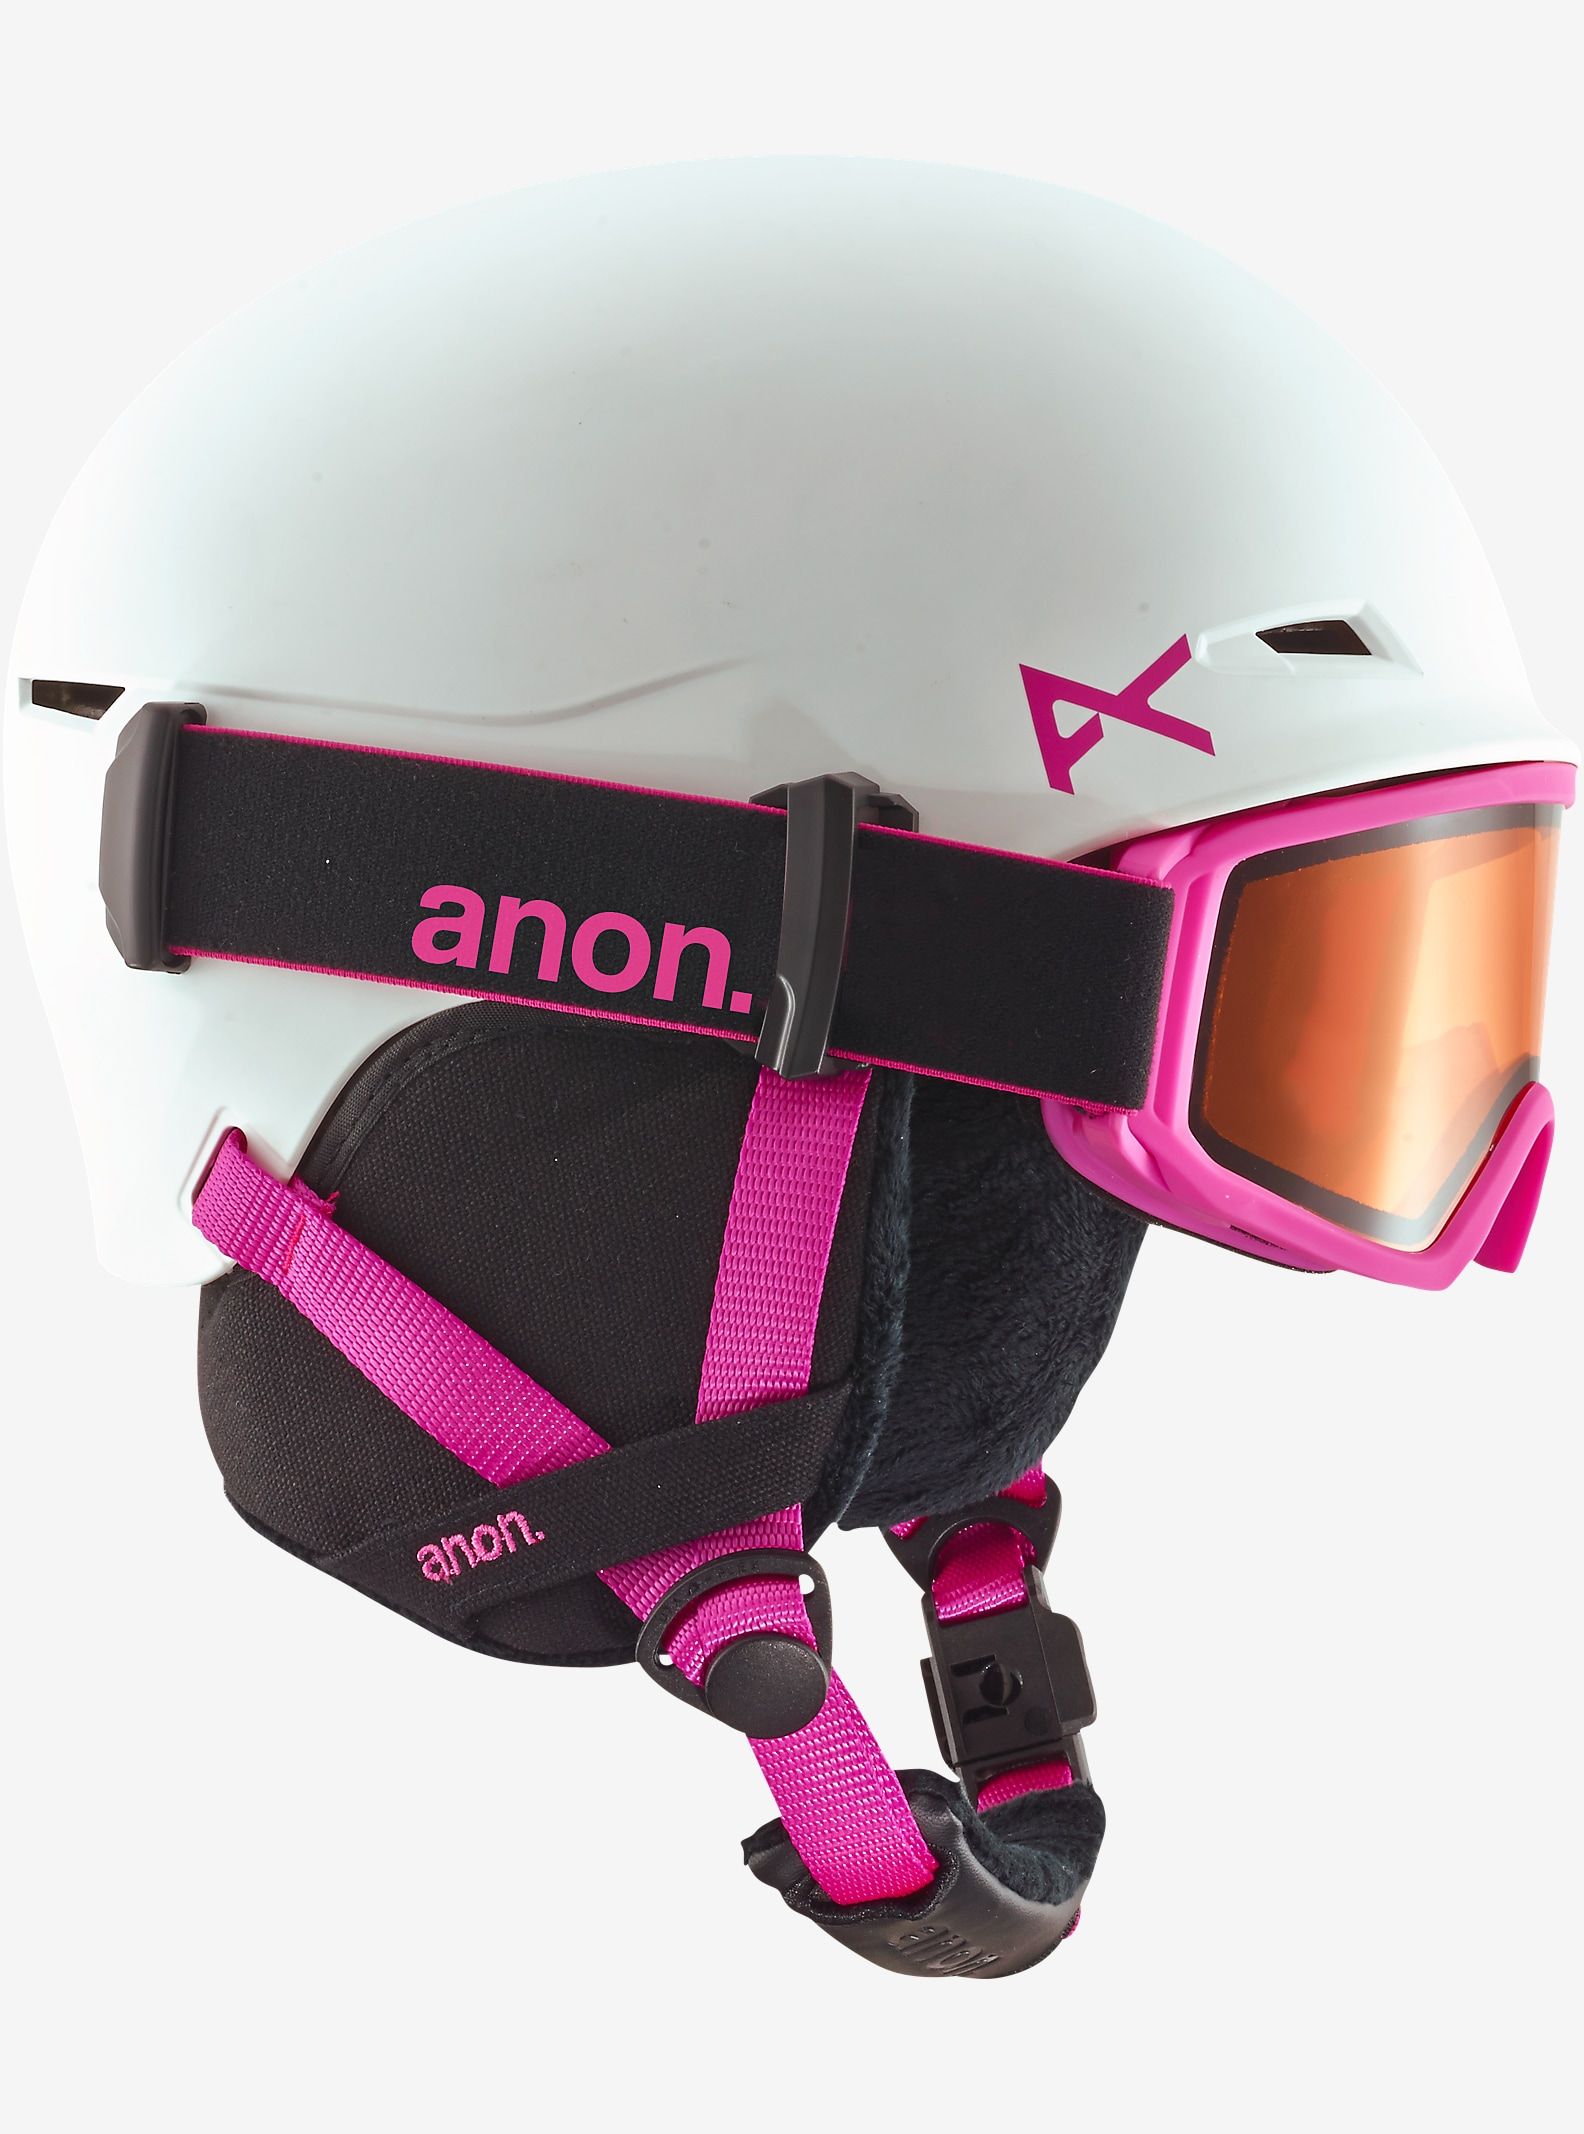 anon. Casque Define fille affichage en White / Pink